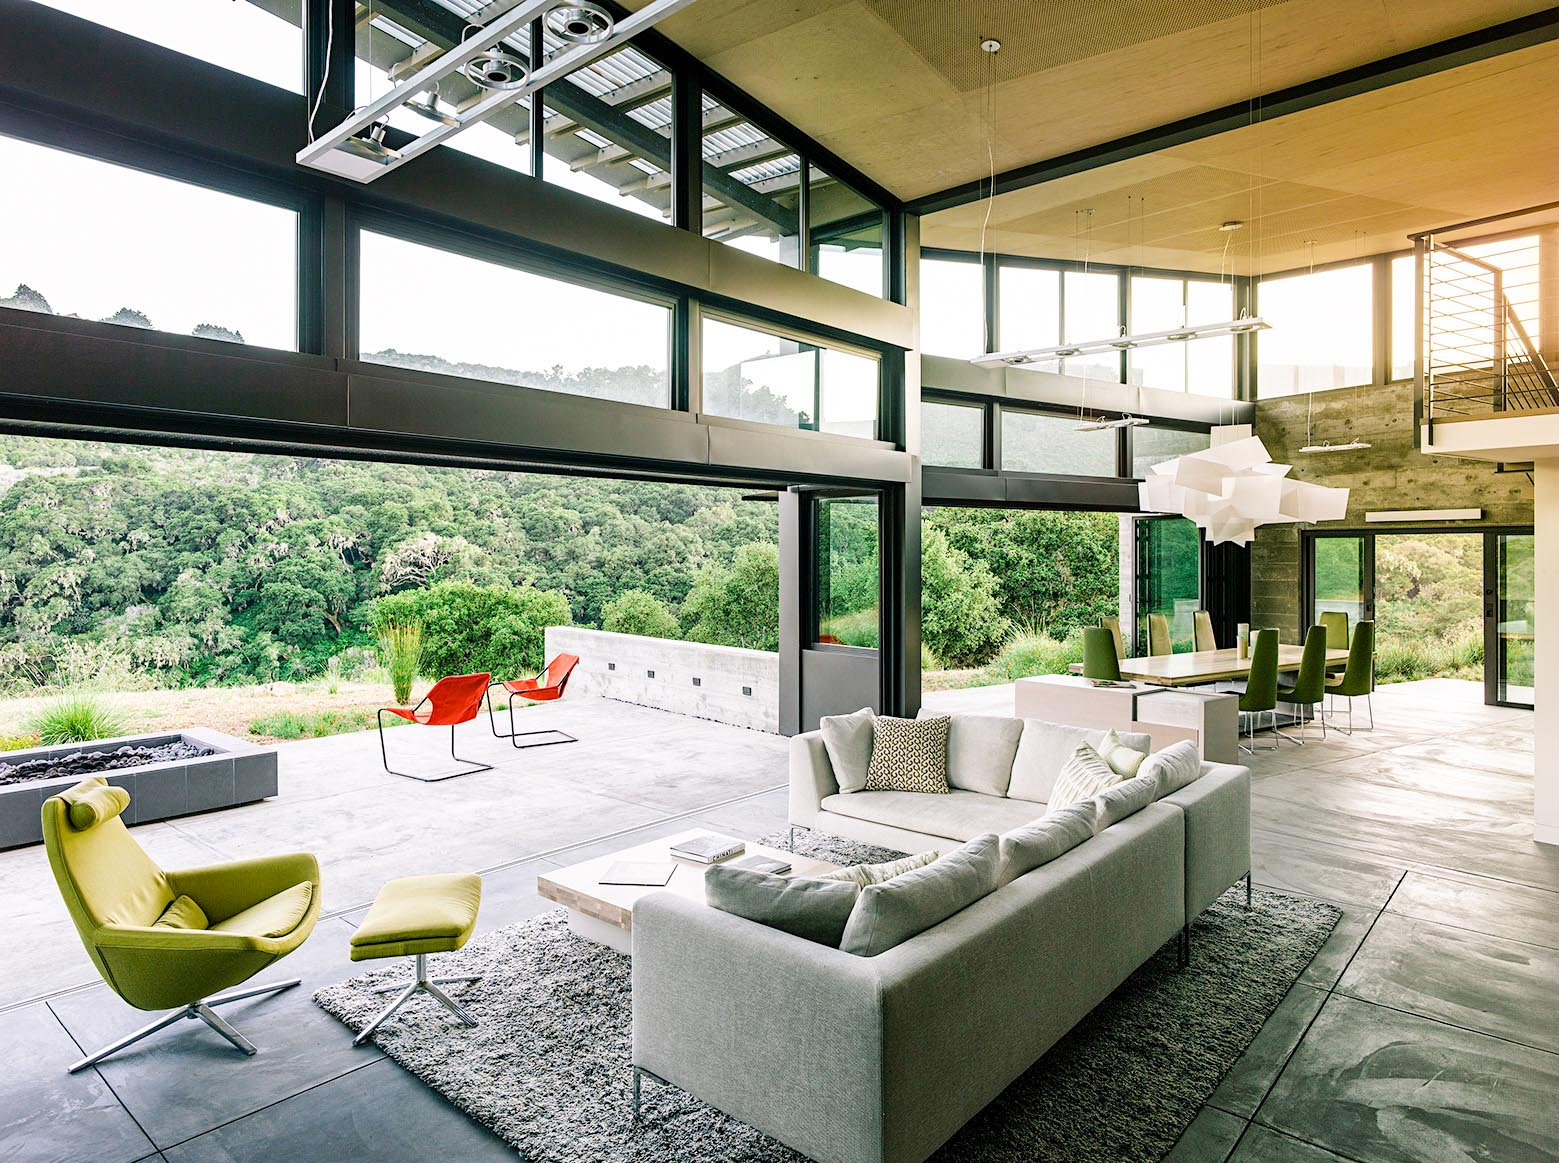 design inspiration in this serene home in Carmel California with folding glass walls